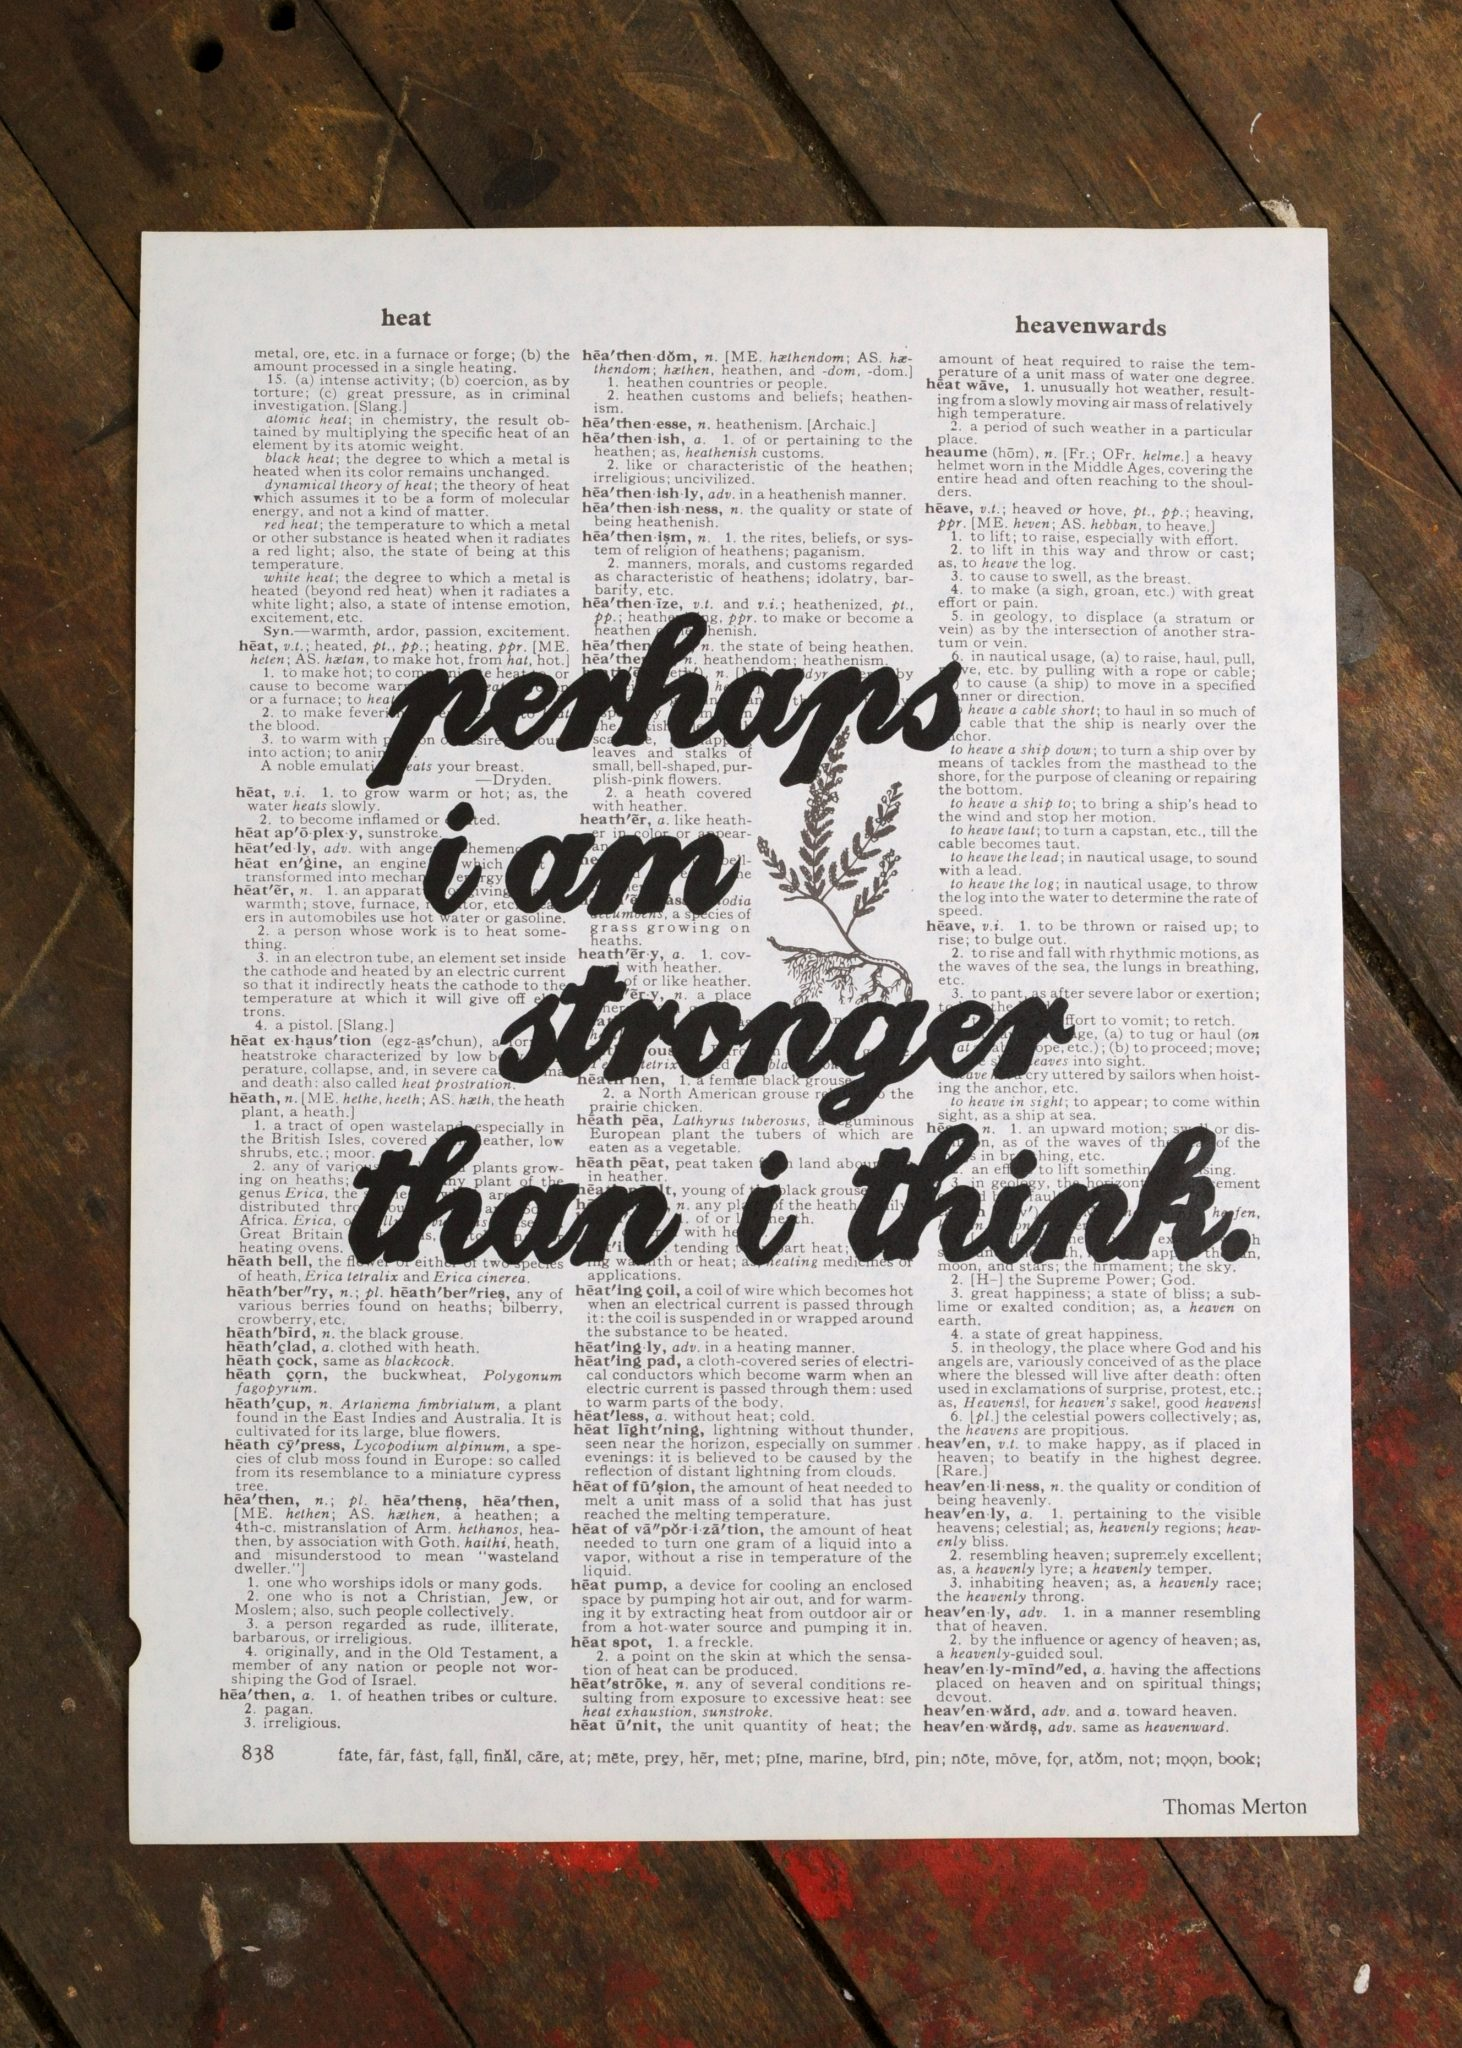 Dictionary Page Print - Perhaps I am stronger than I think. -Thomas Merton